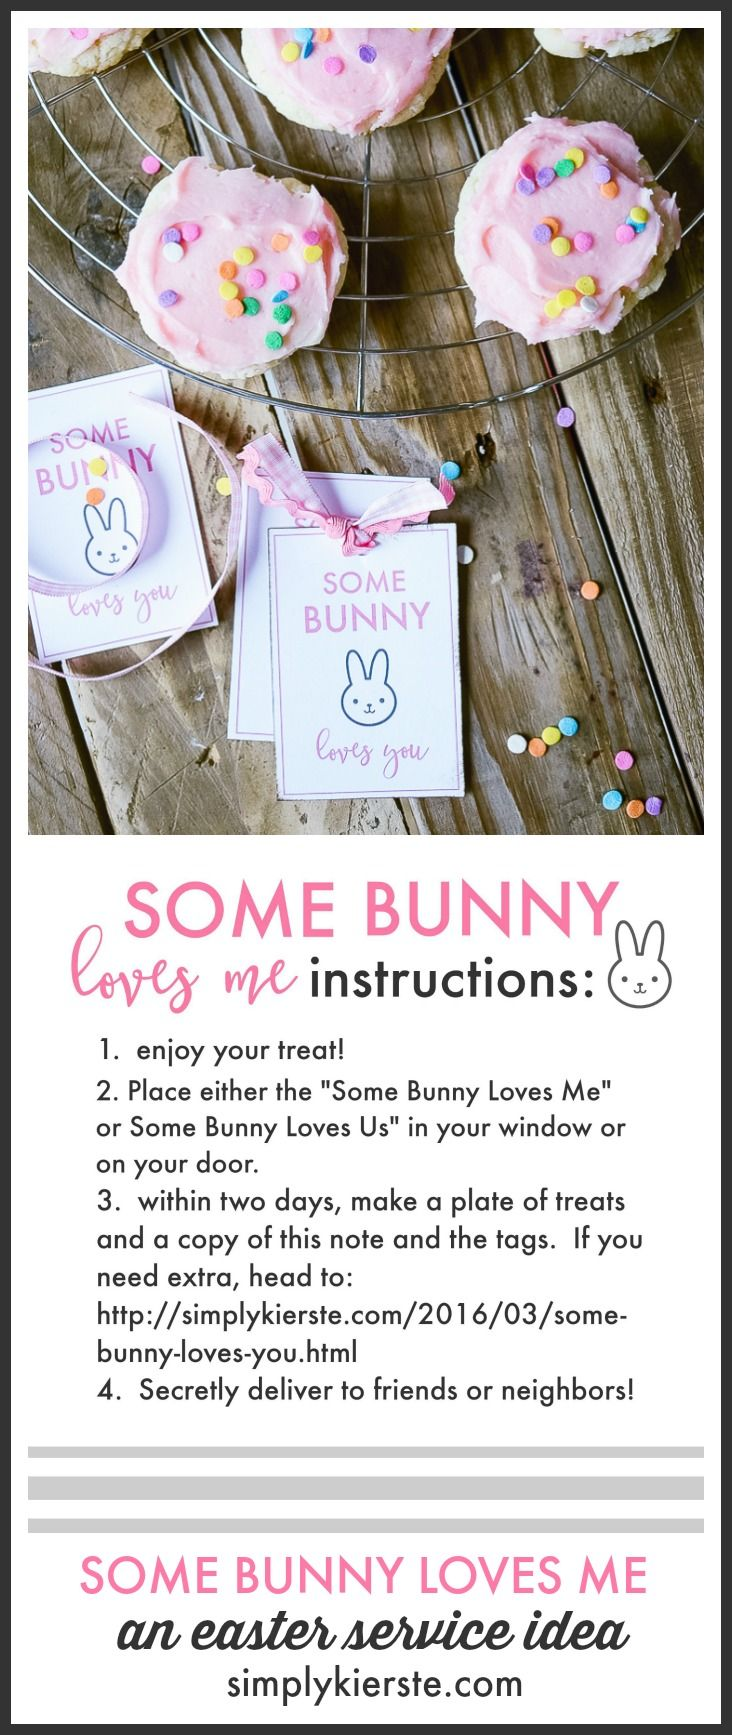 These darling Easter printables are perfect for attaching to yummy treats and then surprising friends and neighbors! Fun Easter service idea for families!